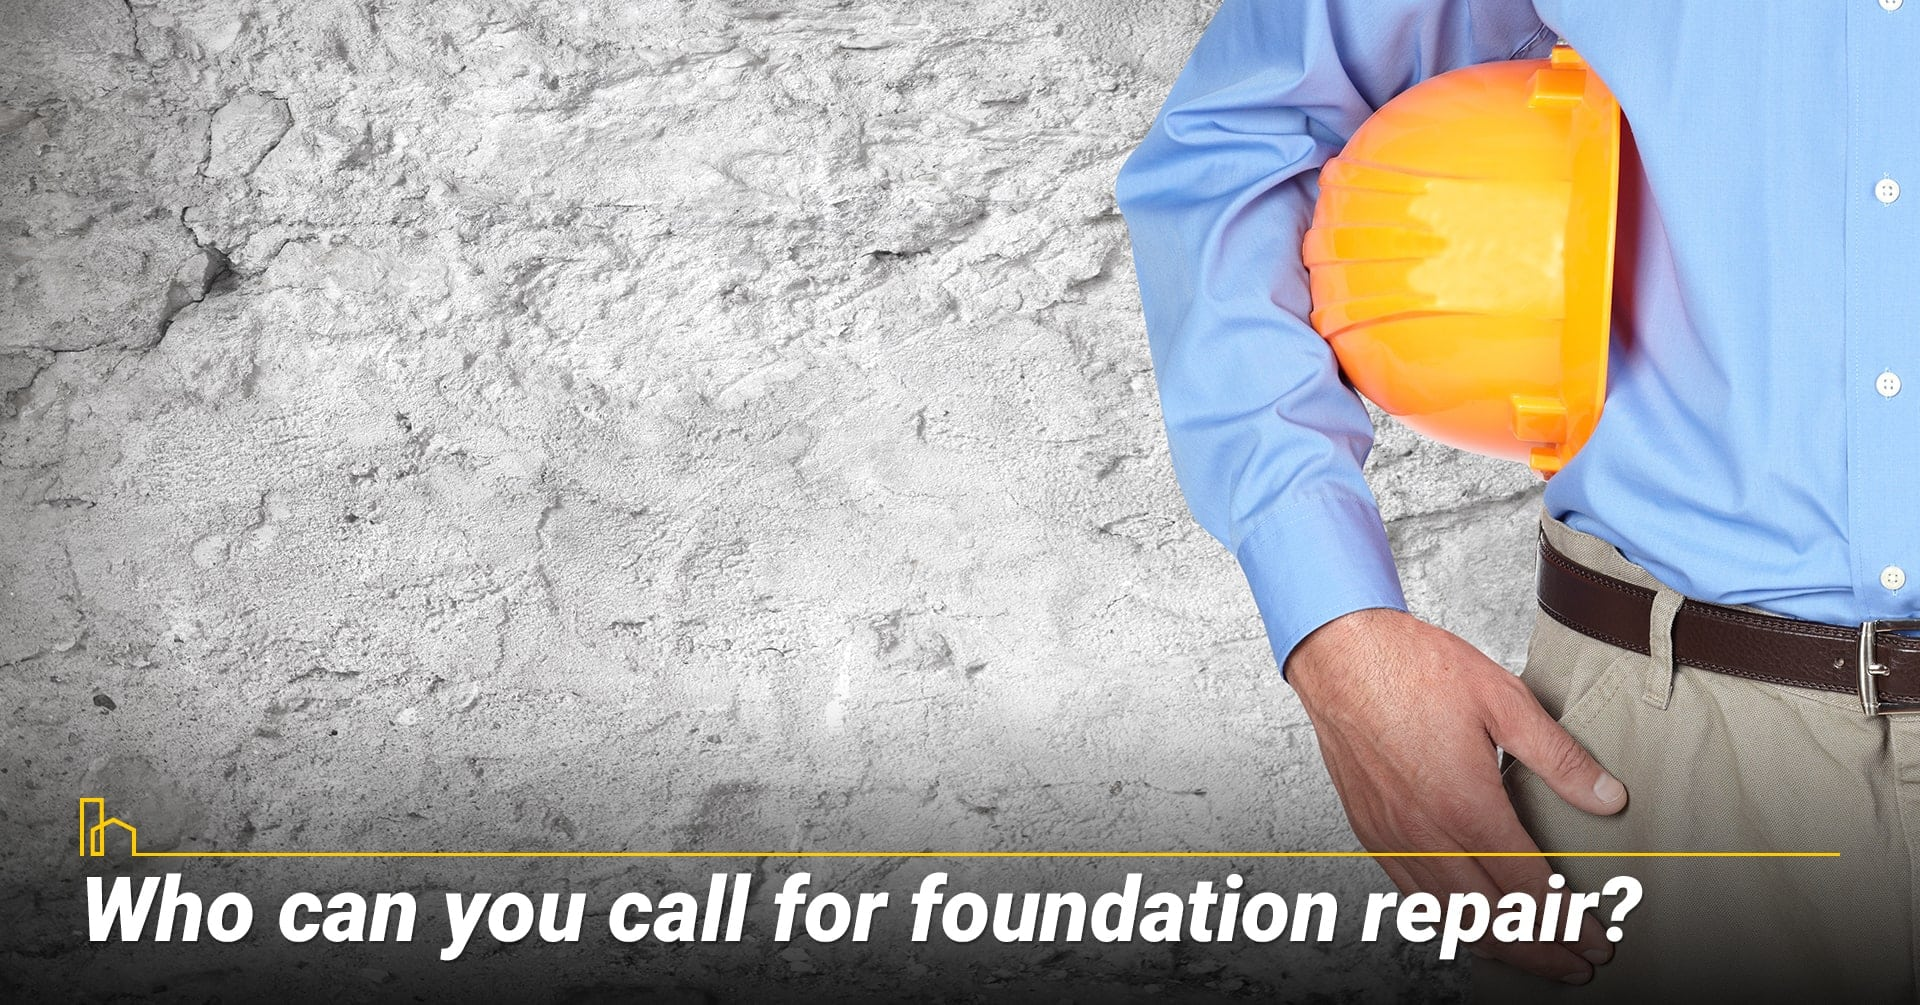 Who can you call for foundation repair? look for contractor